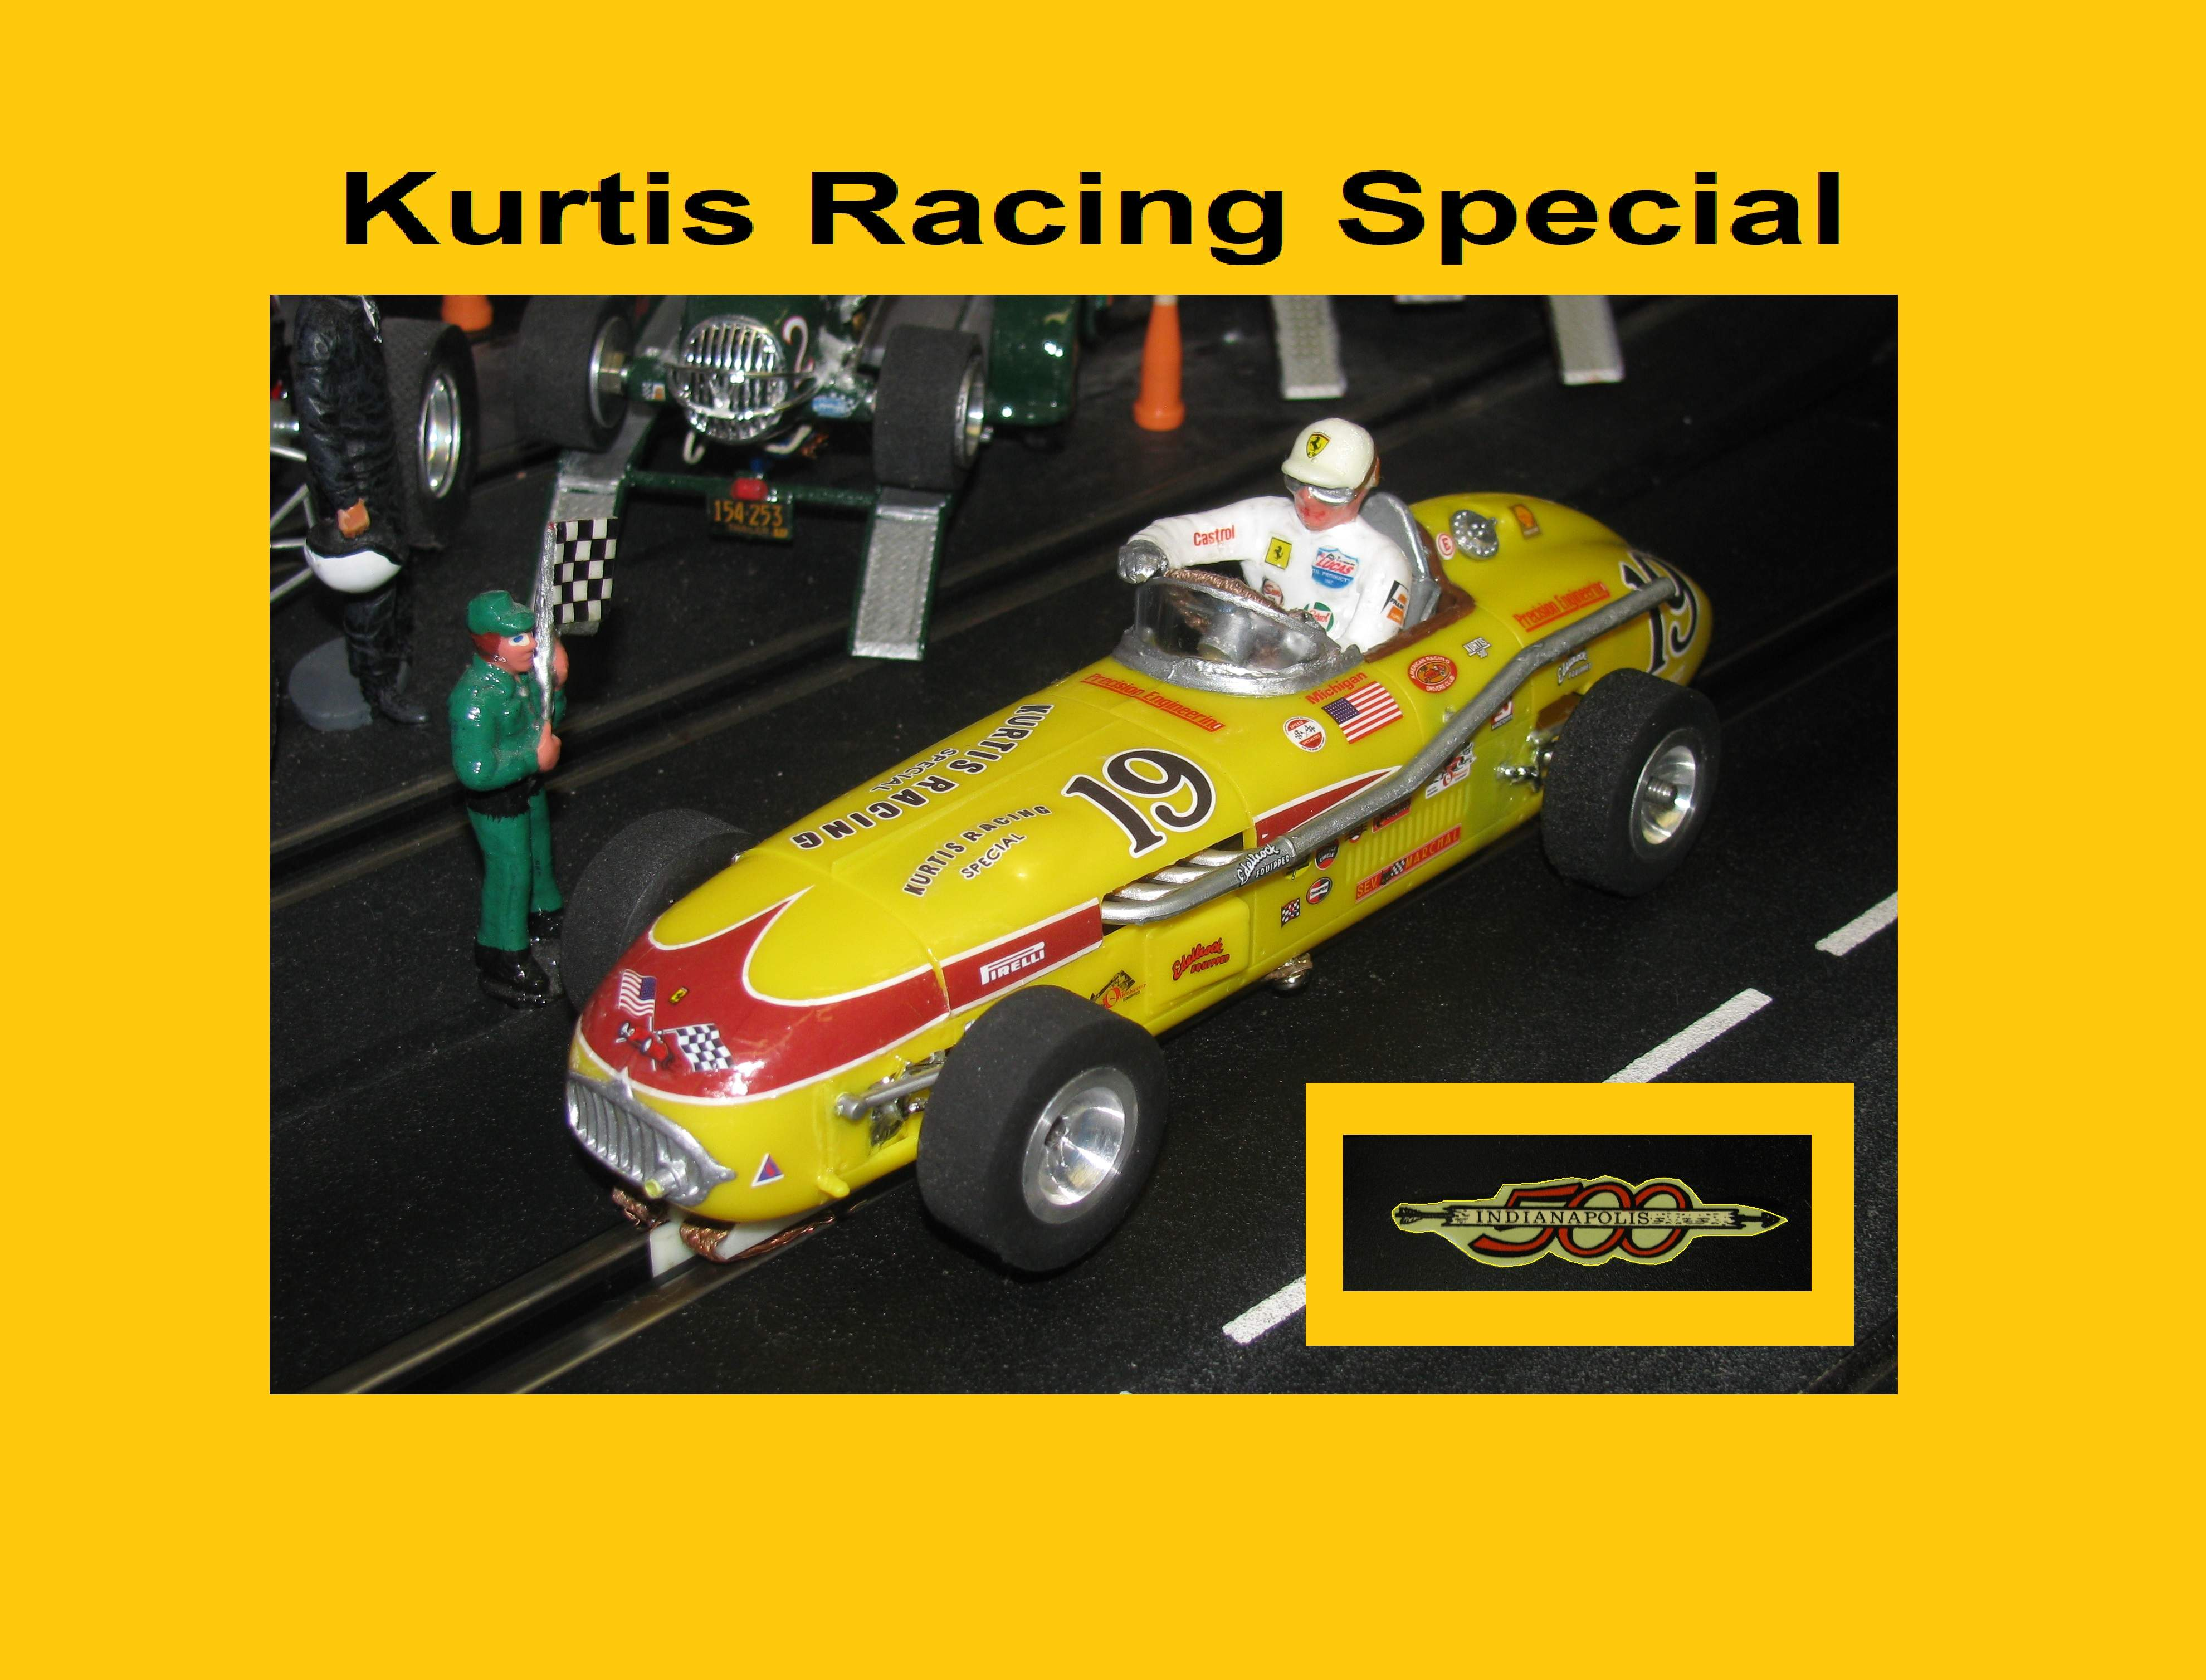 *SOLD* Monogram Kurtis Racing Special Indy 500 Slot Car Racer #19